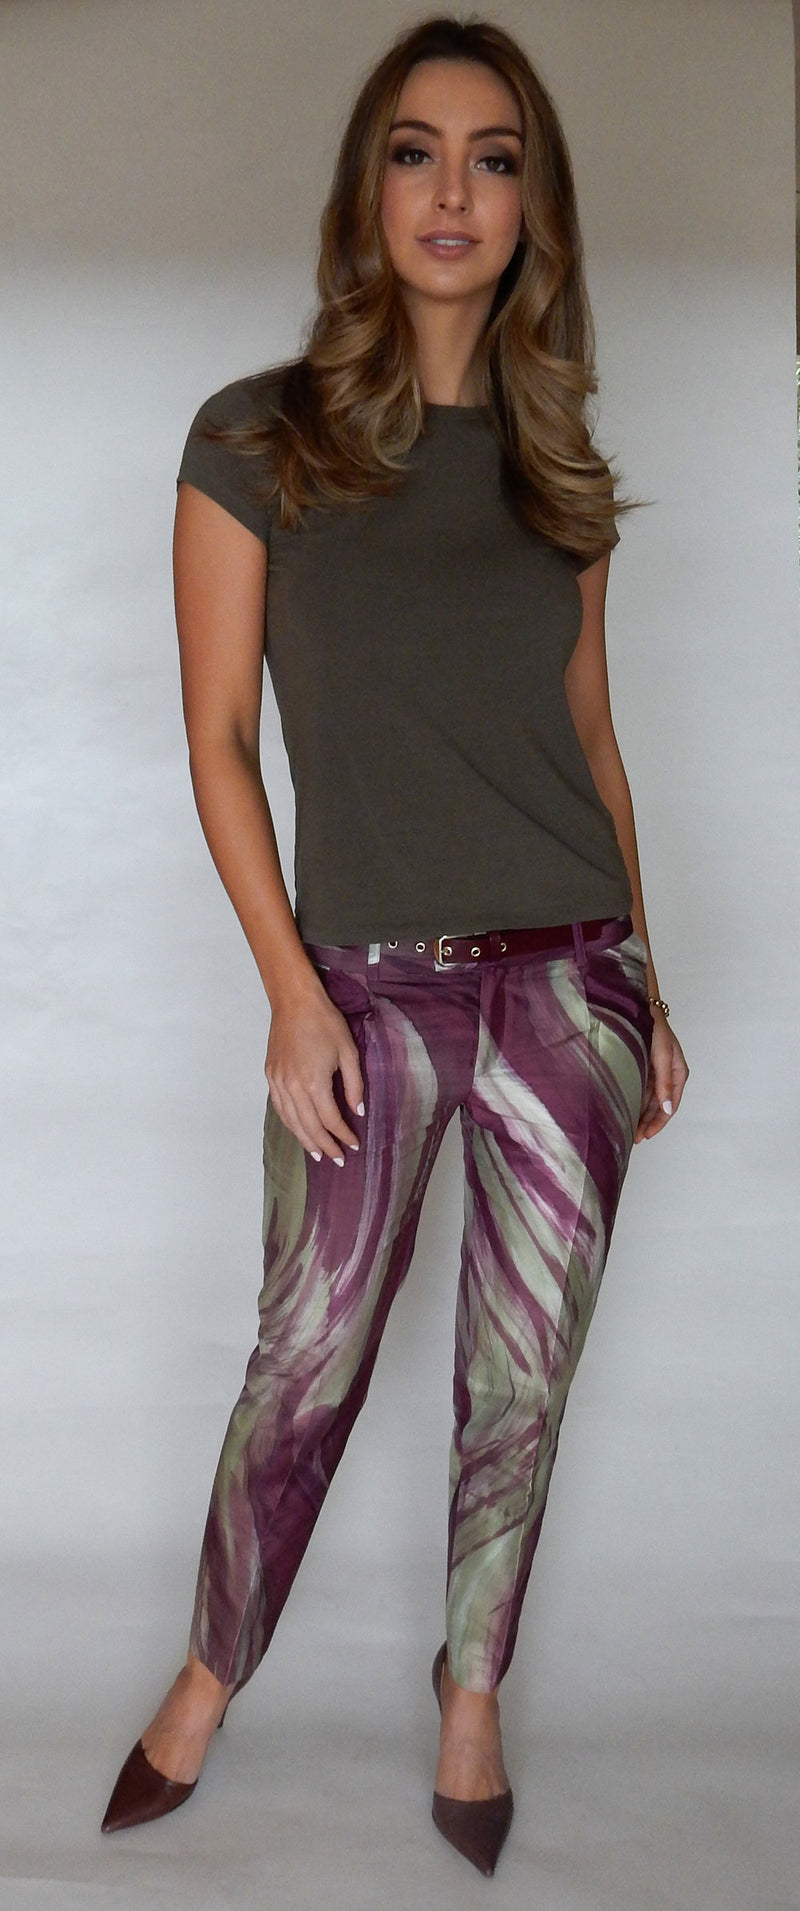 natalie-begg-silk-tailored-pants.jpg